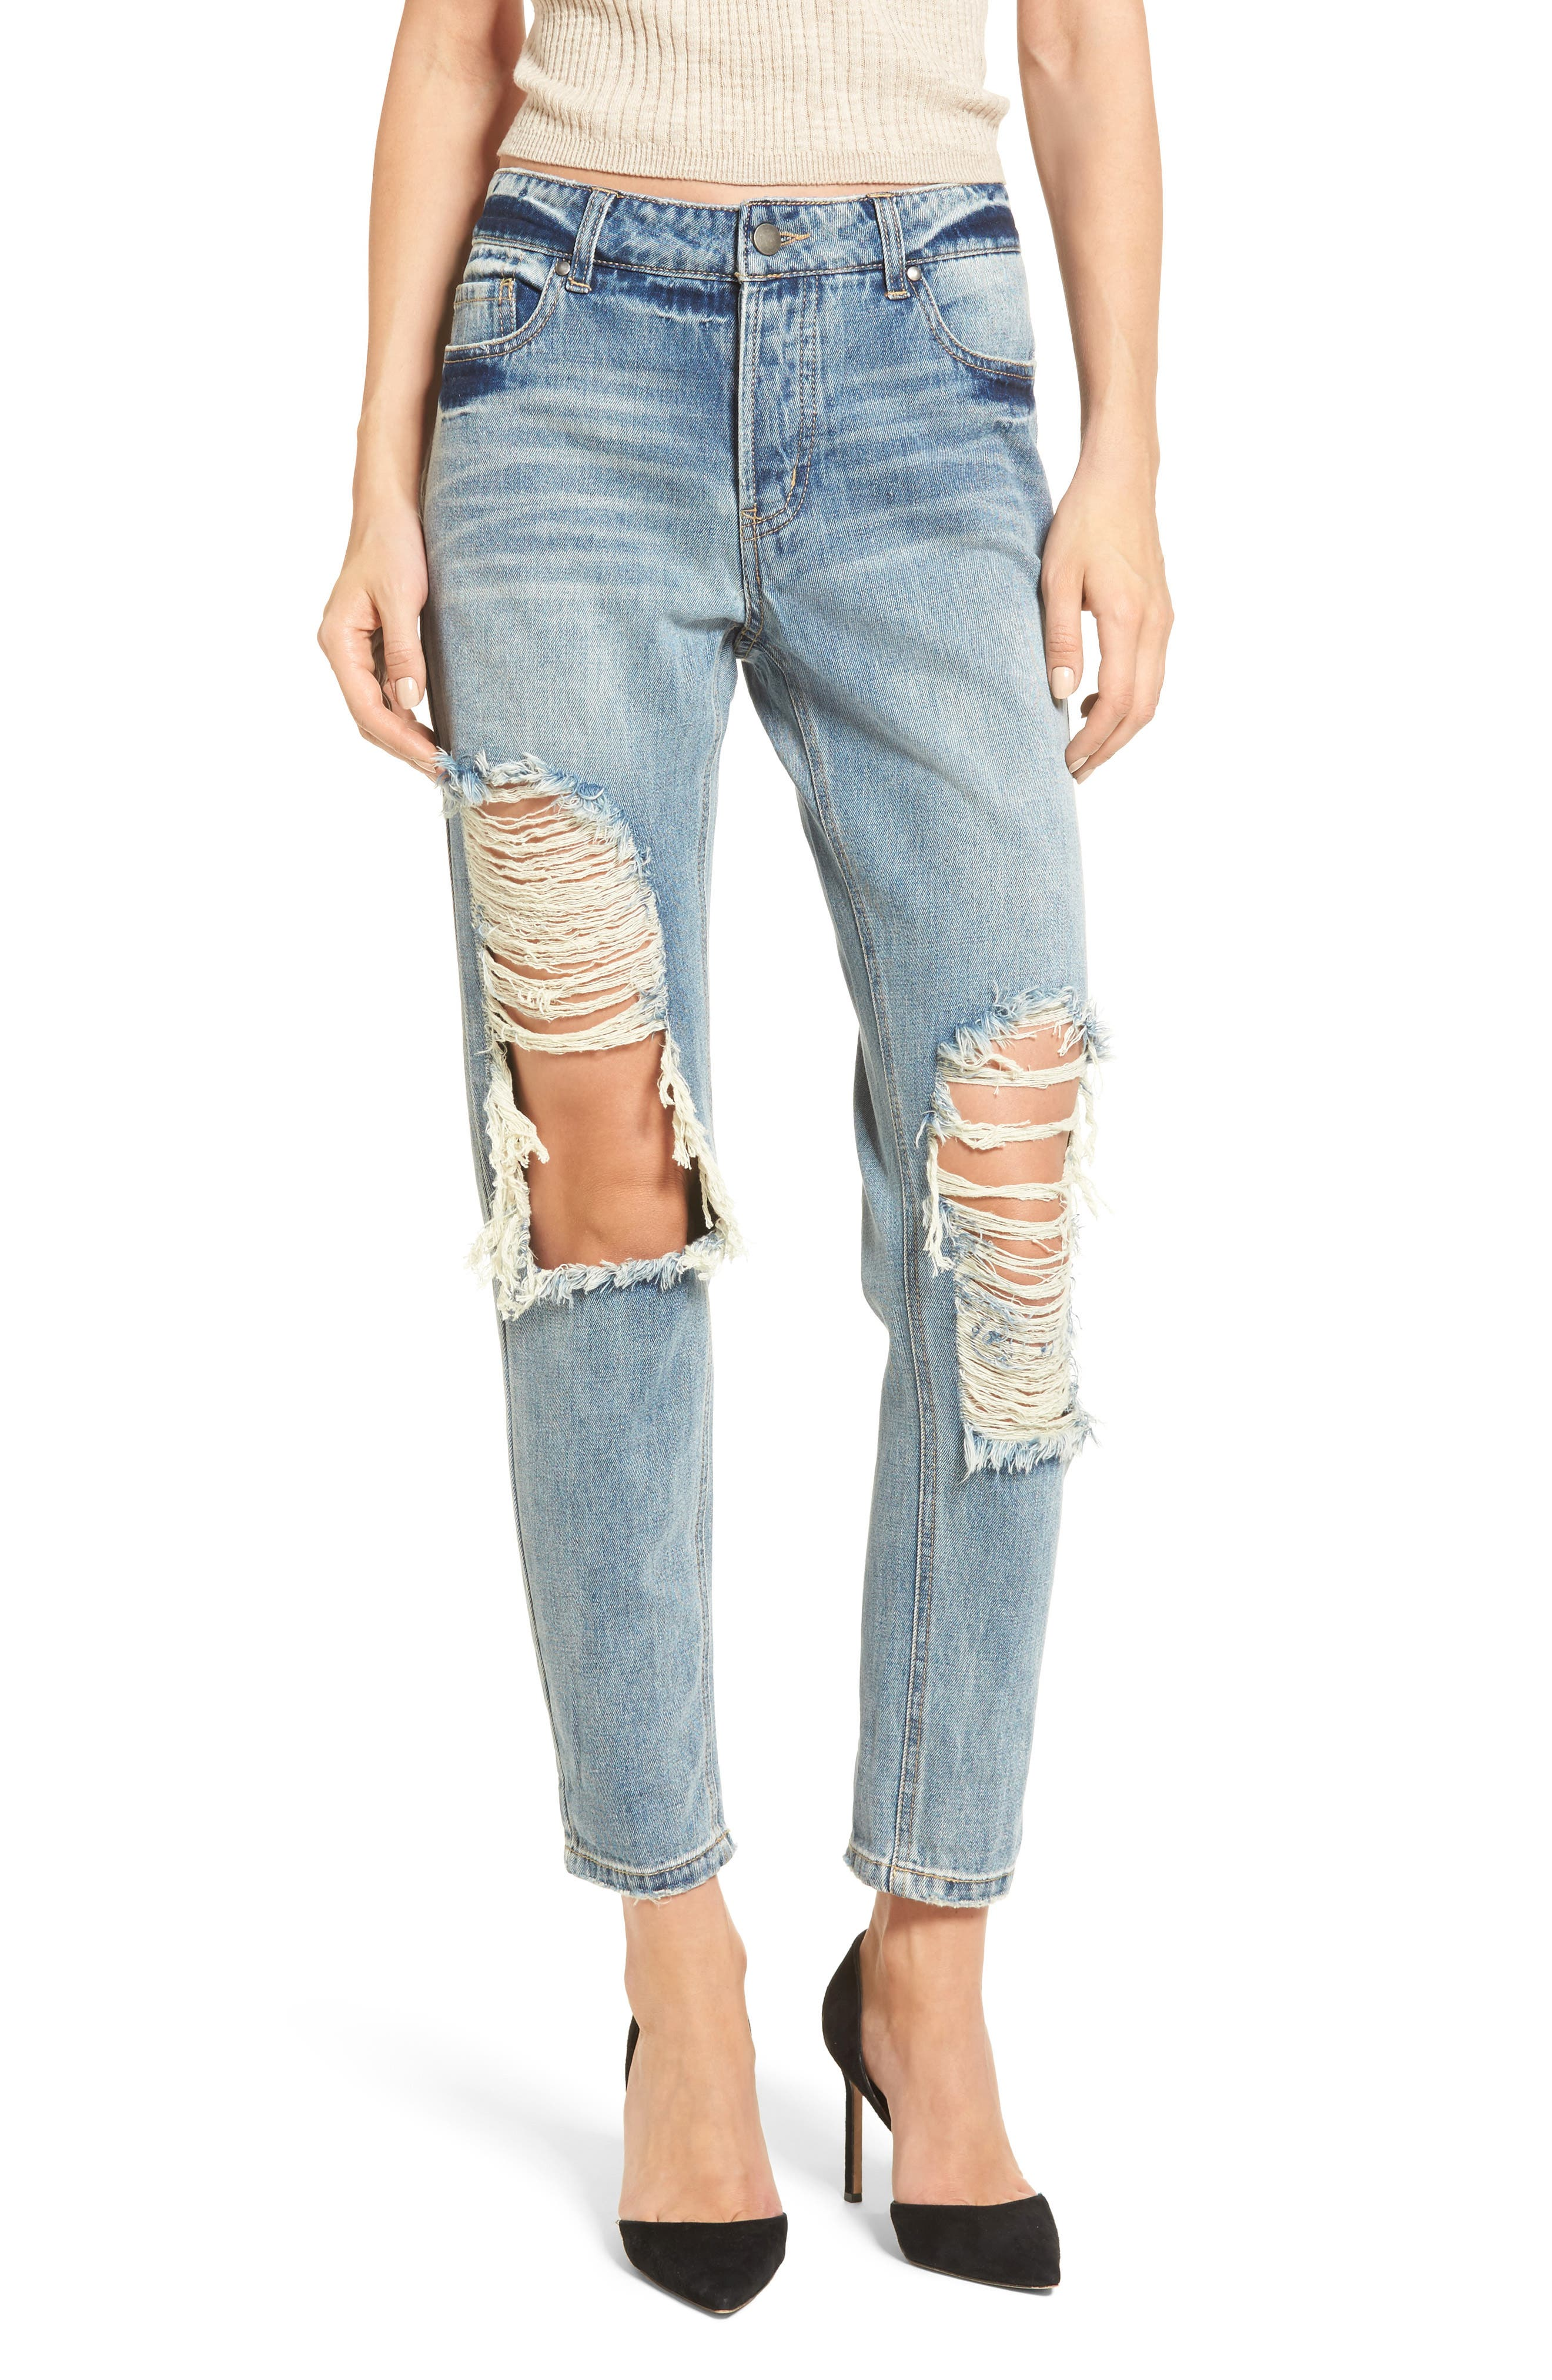 Main Image - AFRM Cyrus High Waist Ankle Jeans (Sinner Wash)